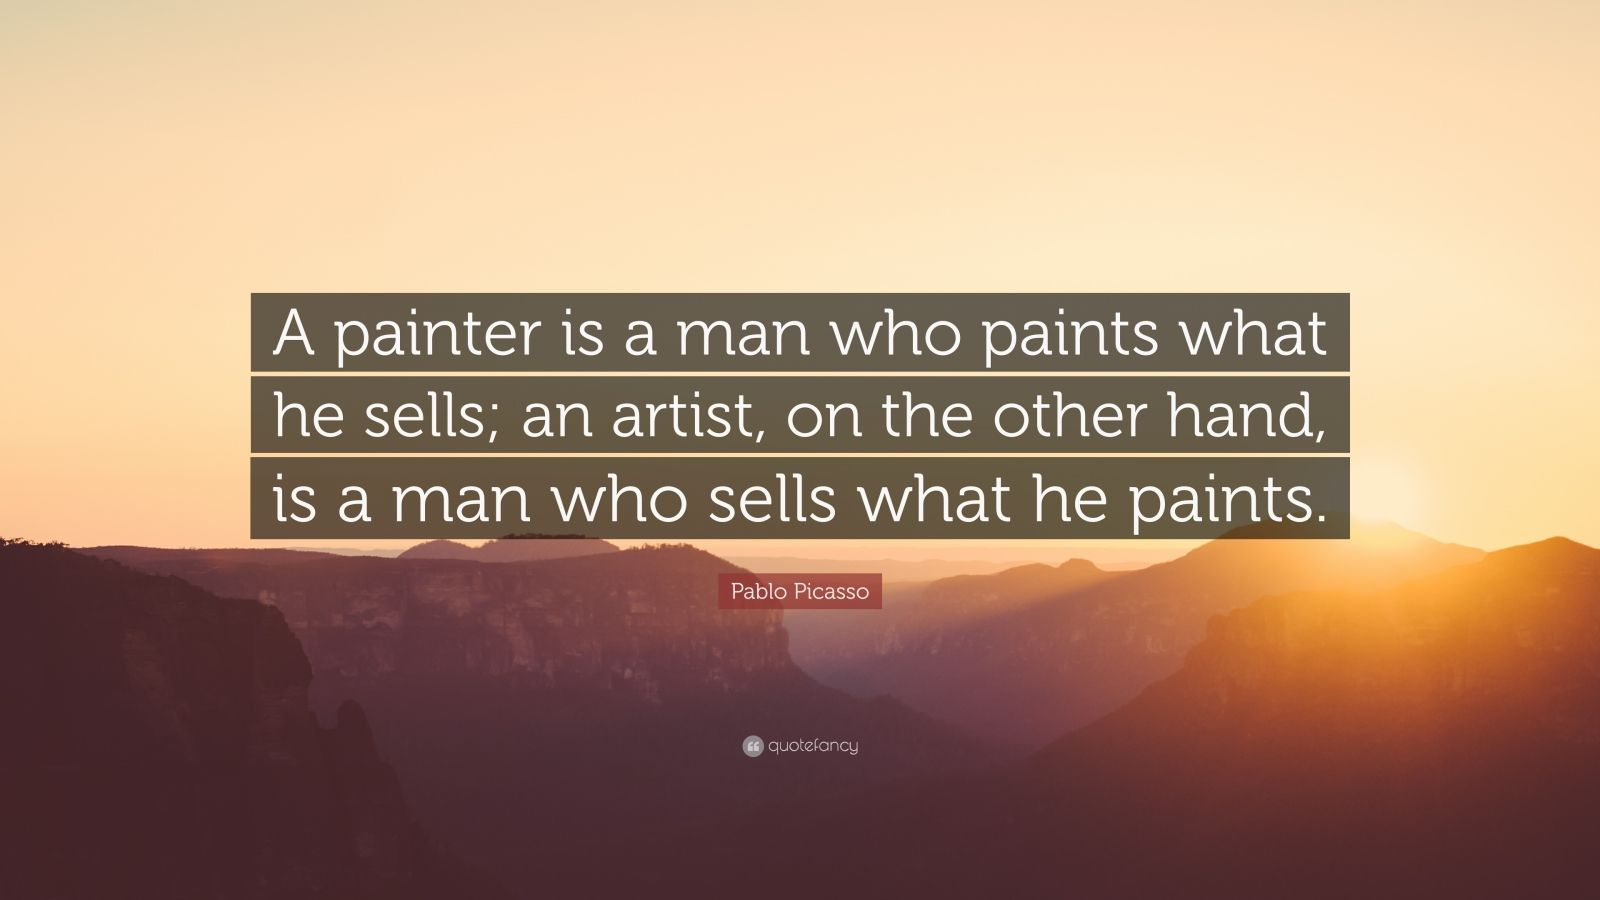 """Pablo Picasso Quote: """"A painter is a man who paints what he sells; an artist, on the other hand, is a man who sells what he paints."""""""